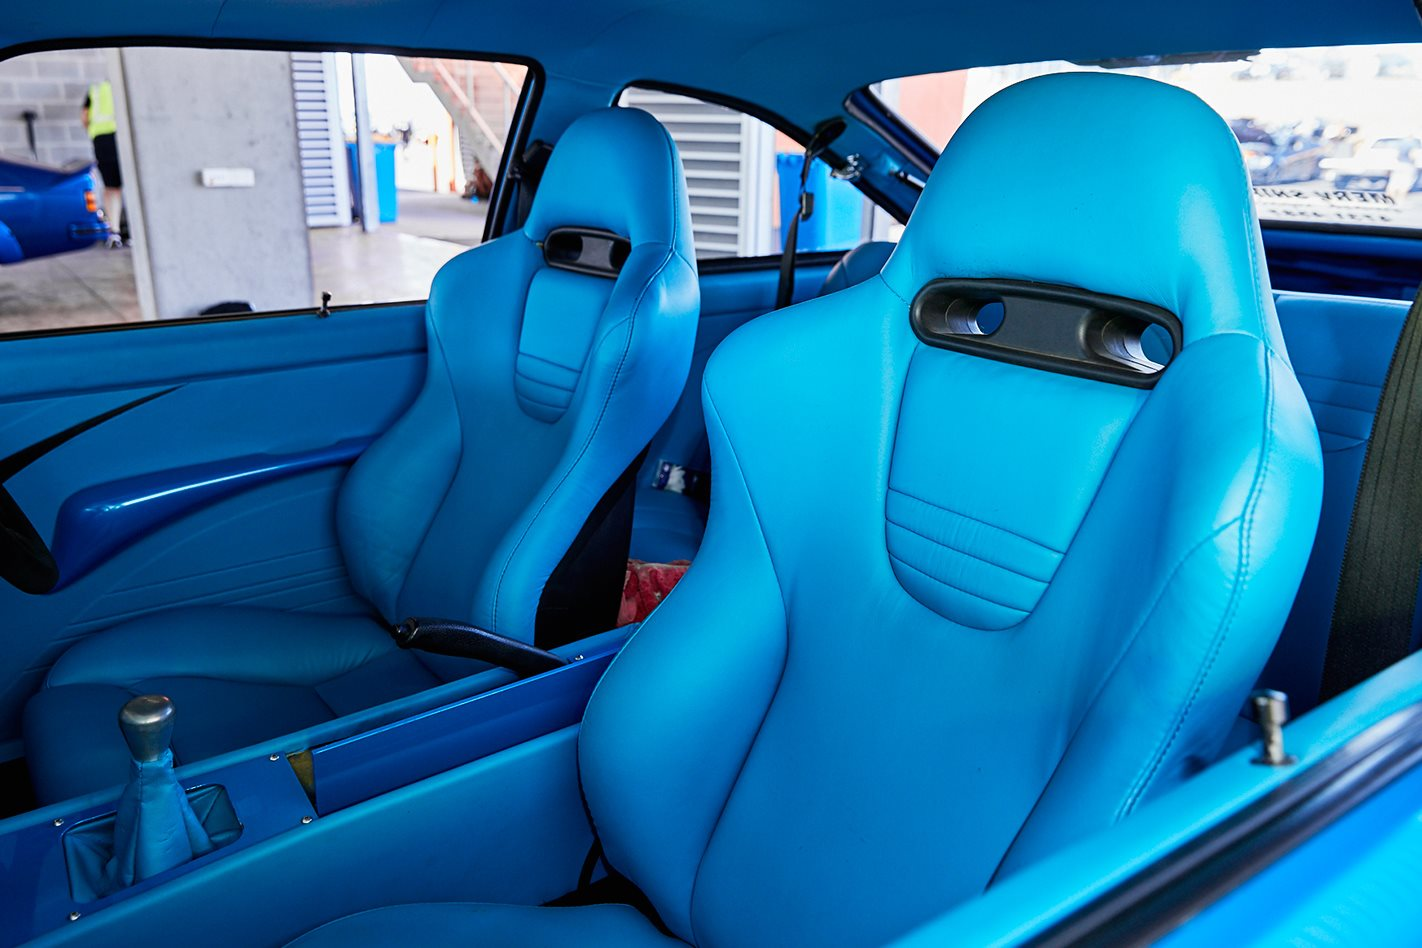 Spinks Torana seats